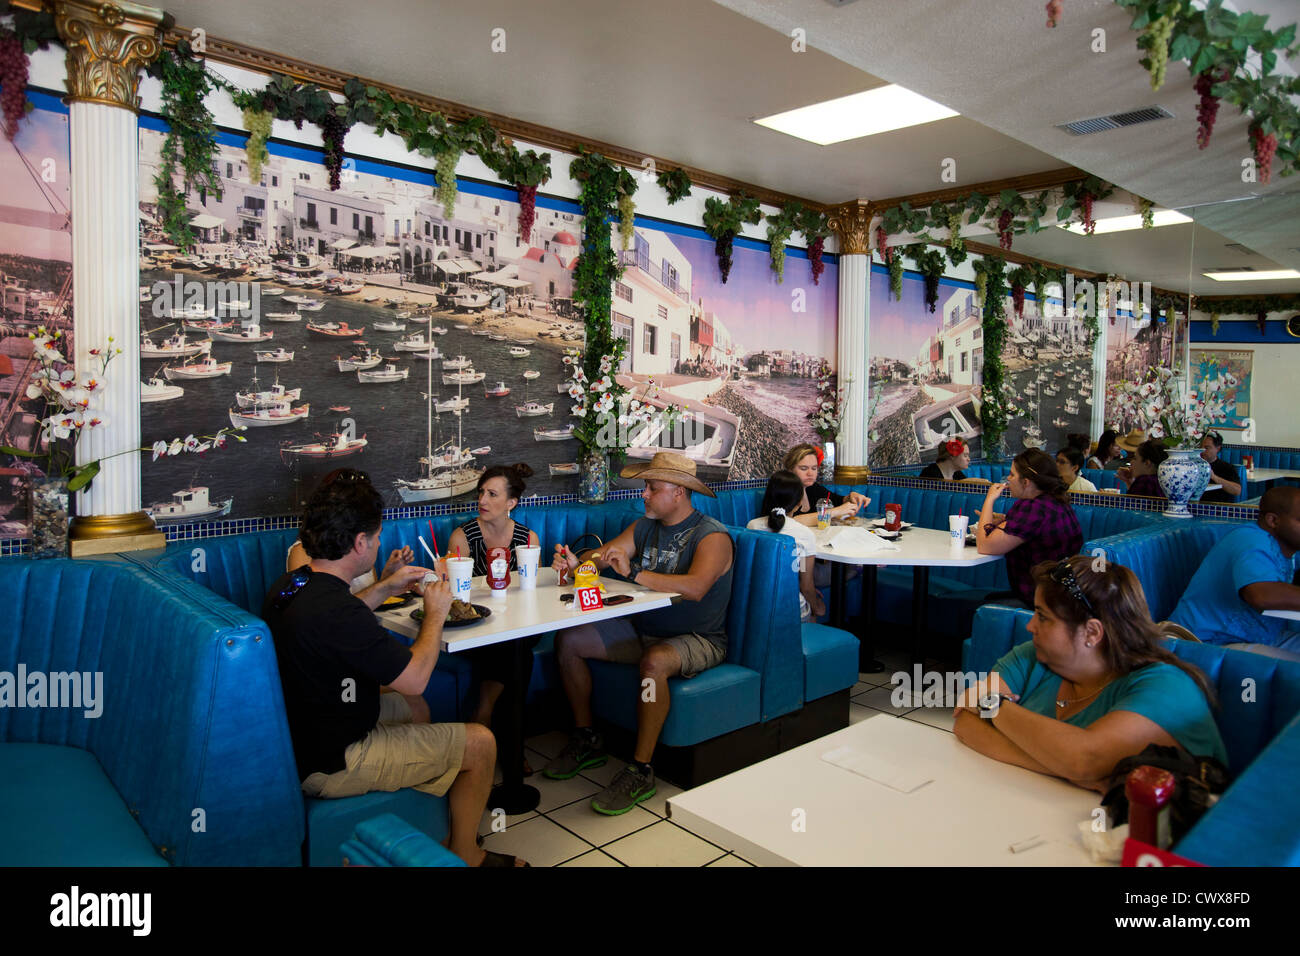 Mad Greek Restaurant, Baker, California, United States of America - Stock Image